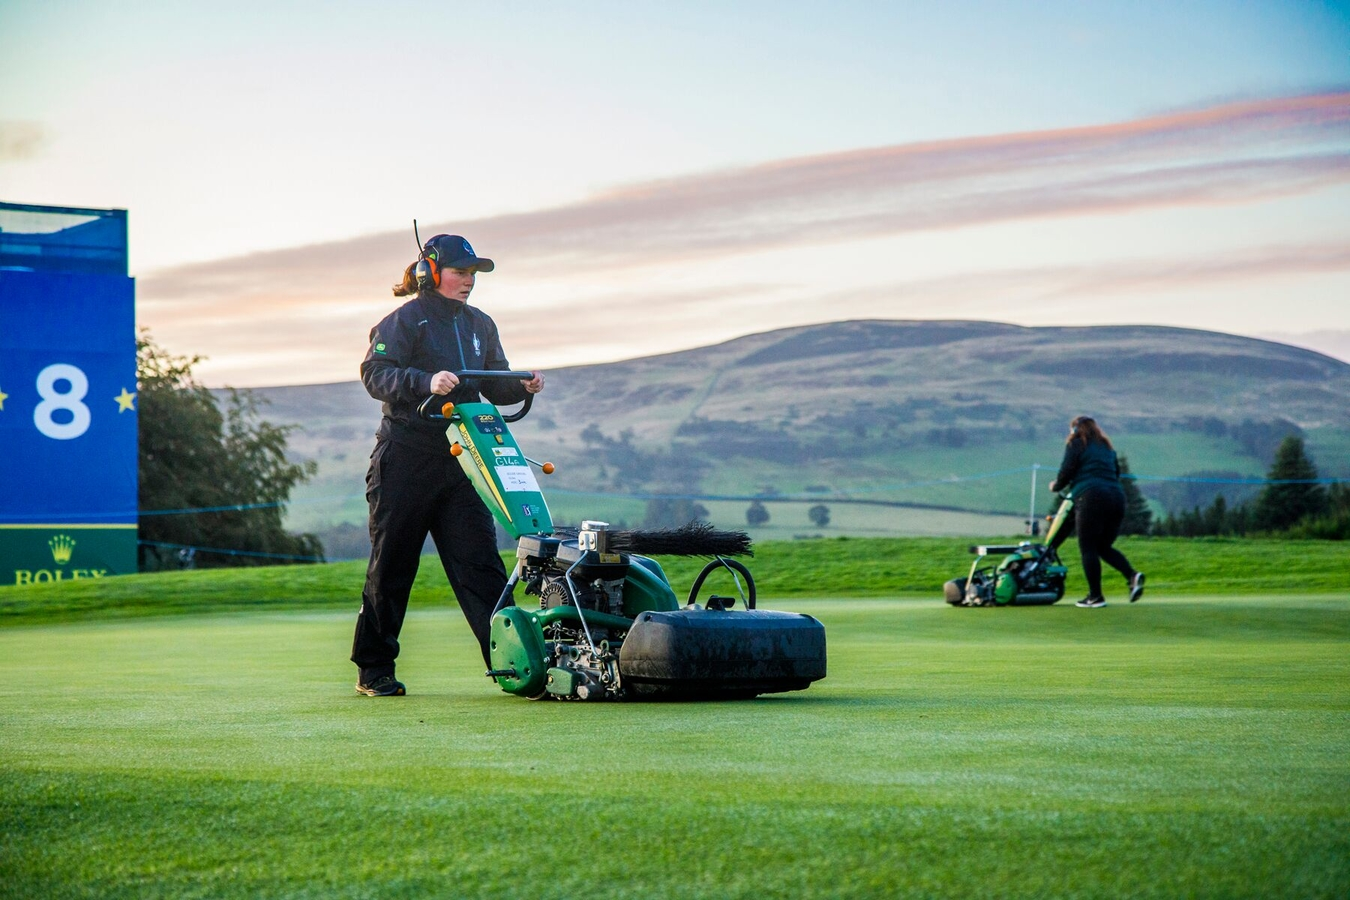 John Deere equipment at work on The PGA Centenary Course during the 2019 Solheim Cup at Gleneagles in Scotland